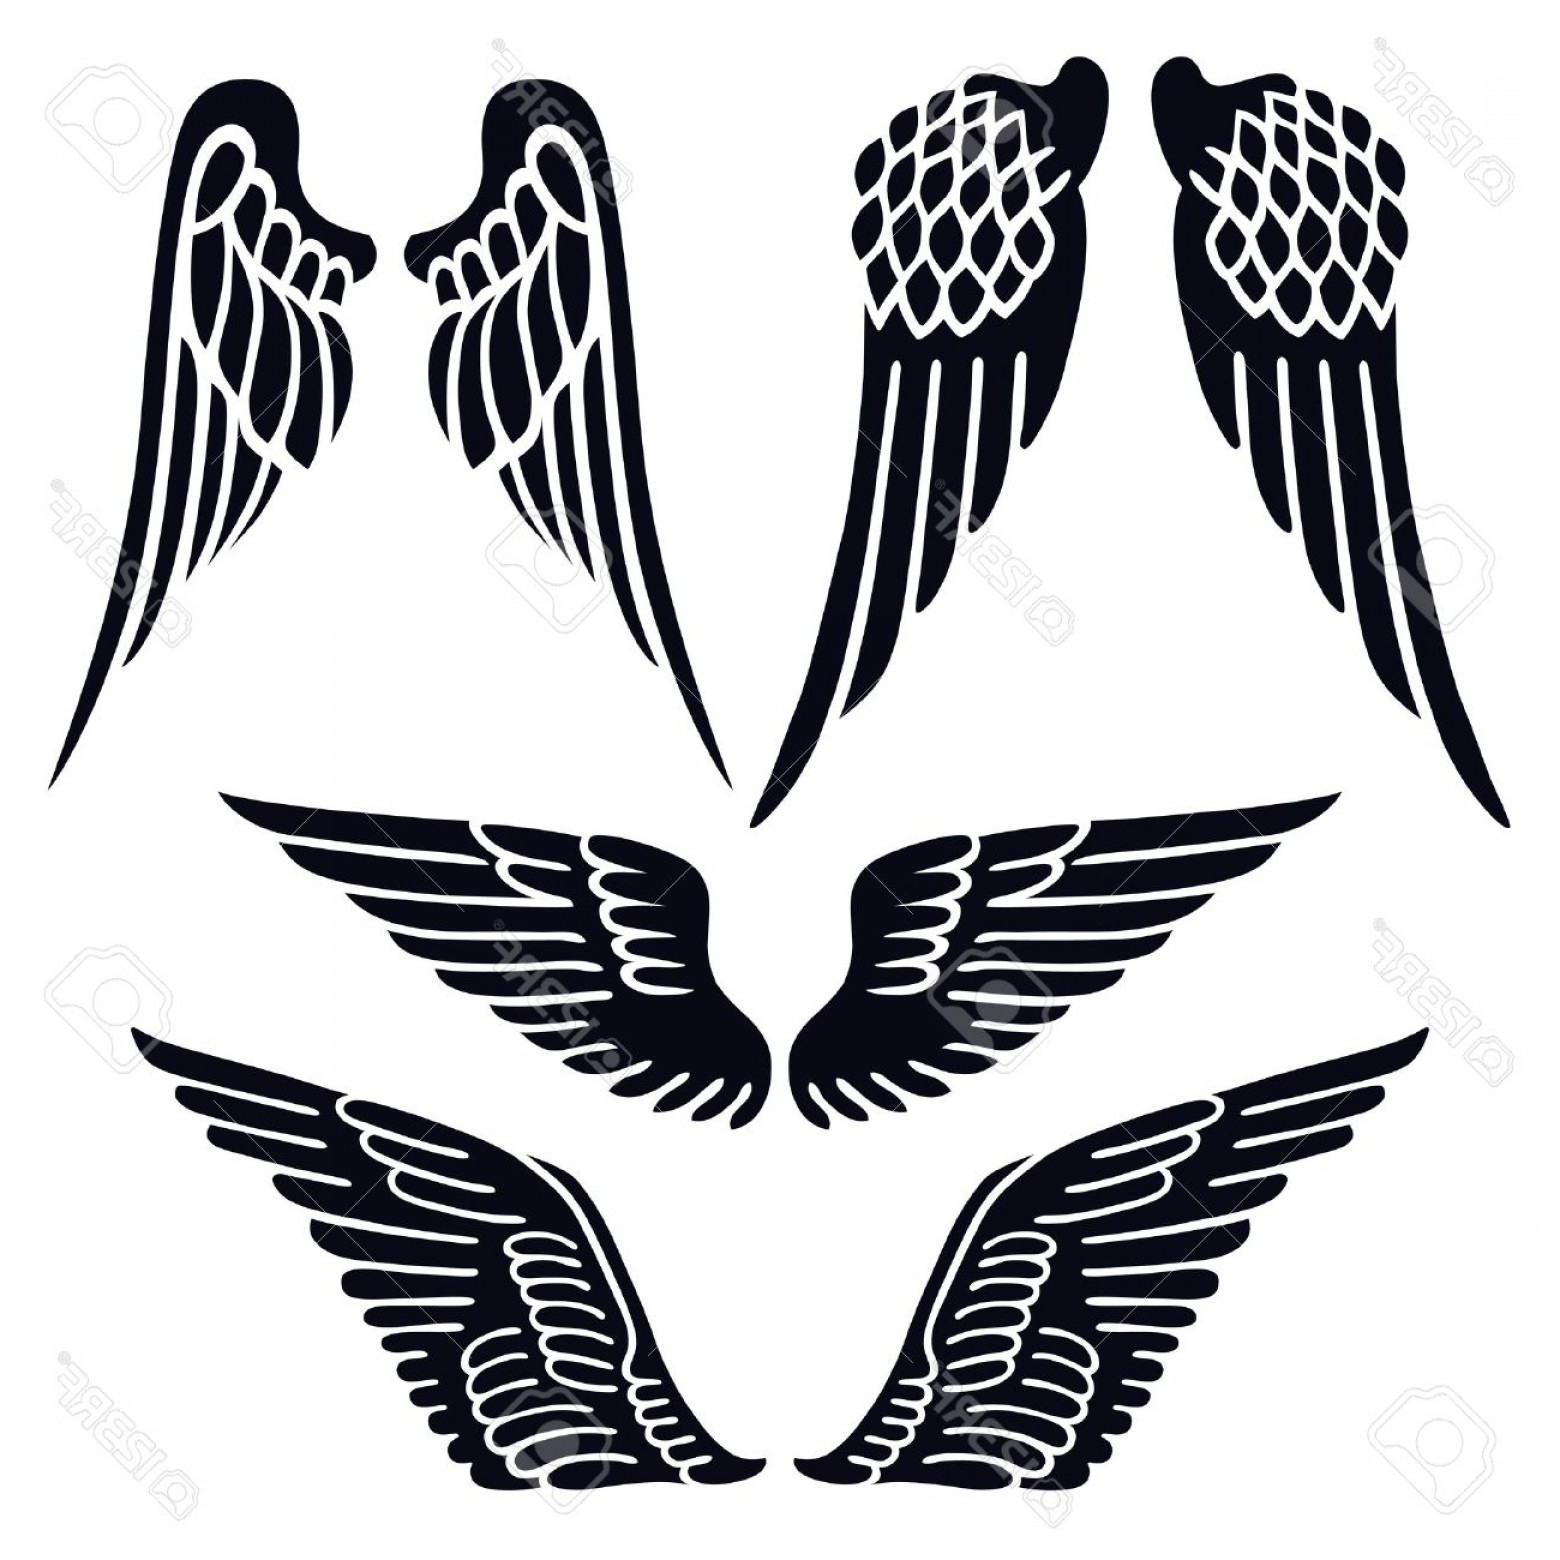 1560x1560 Photostock Vector Angel Wings Set Silhouette Isolated On